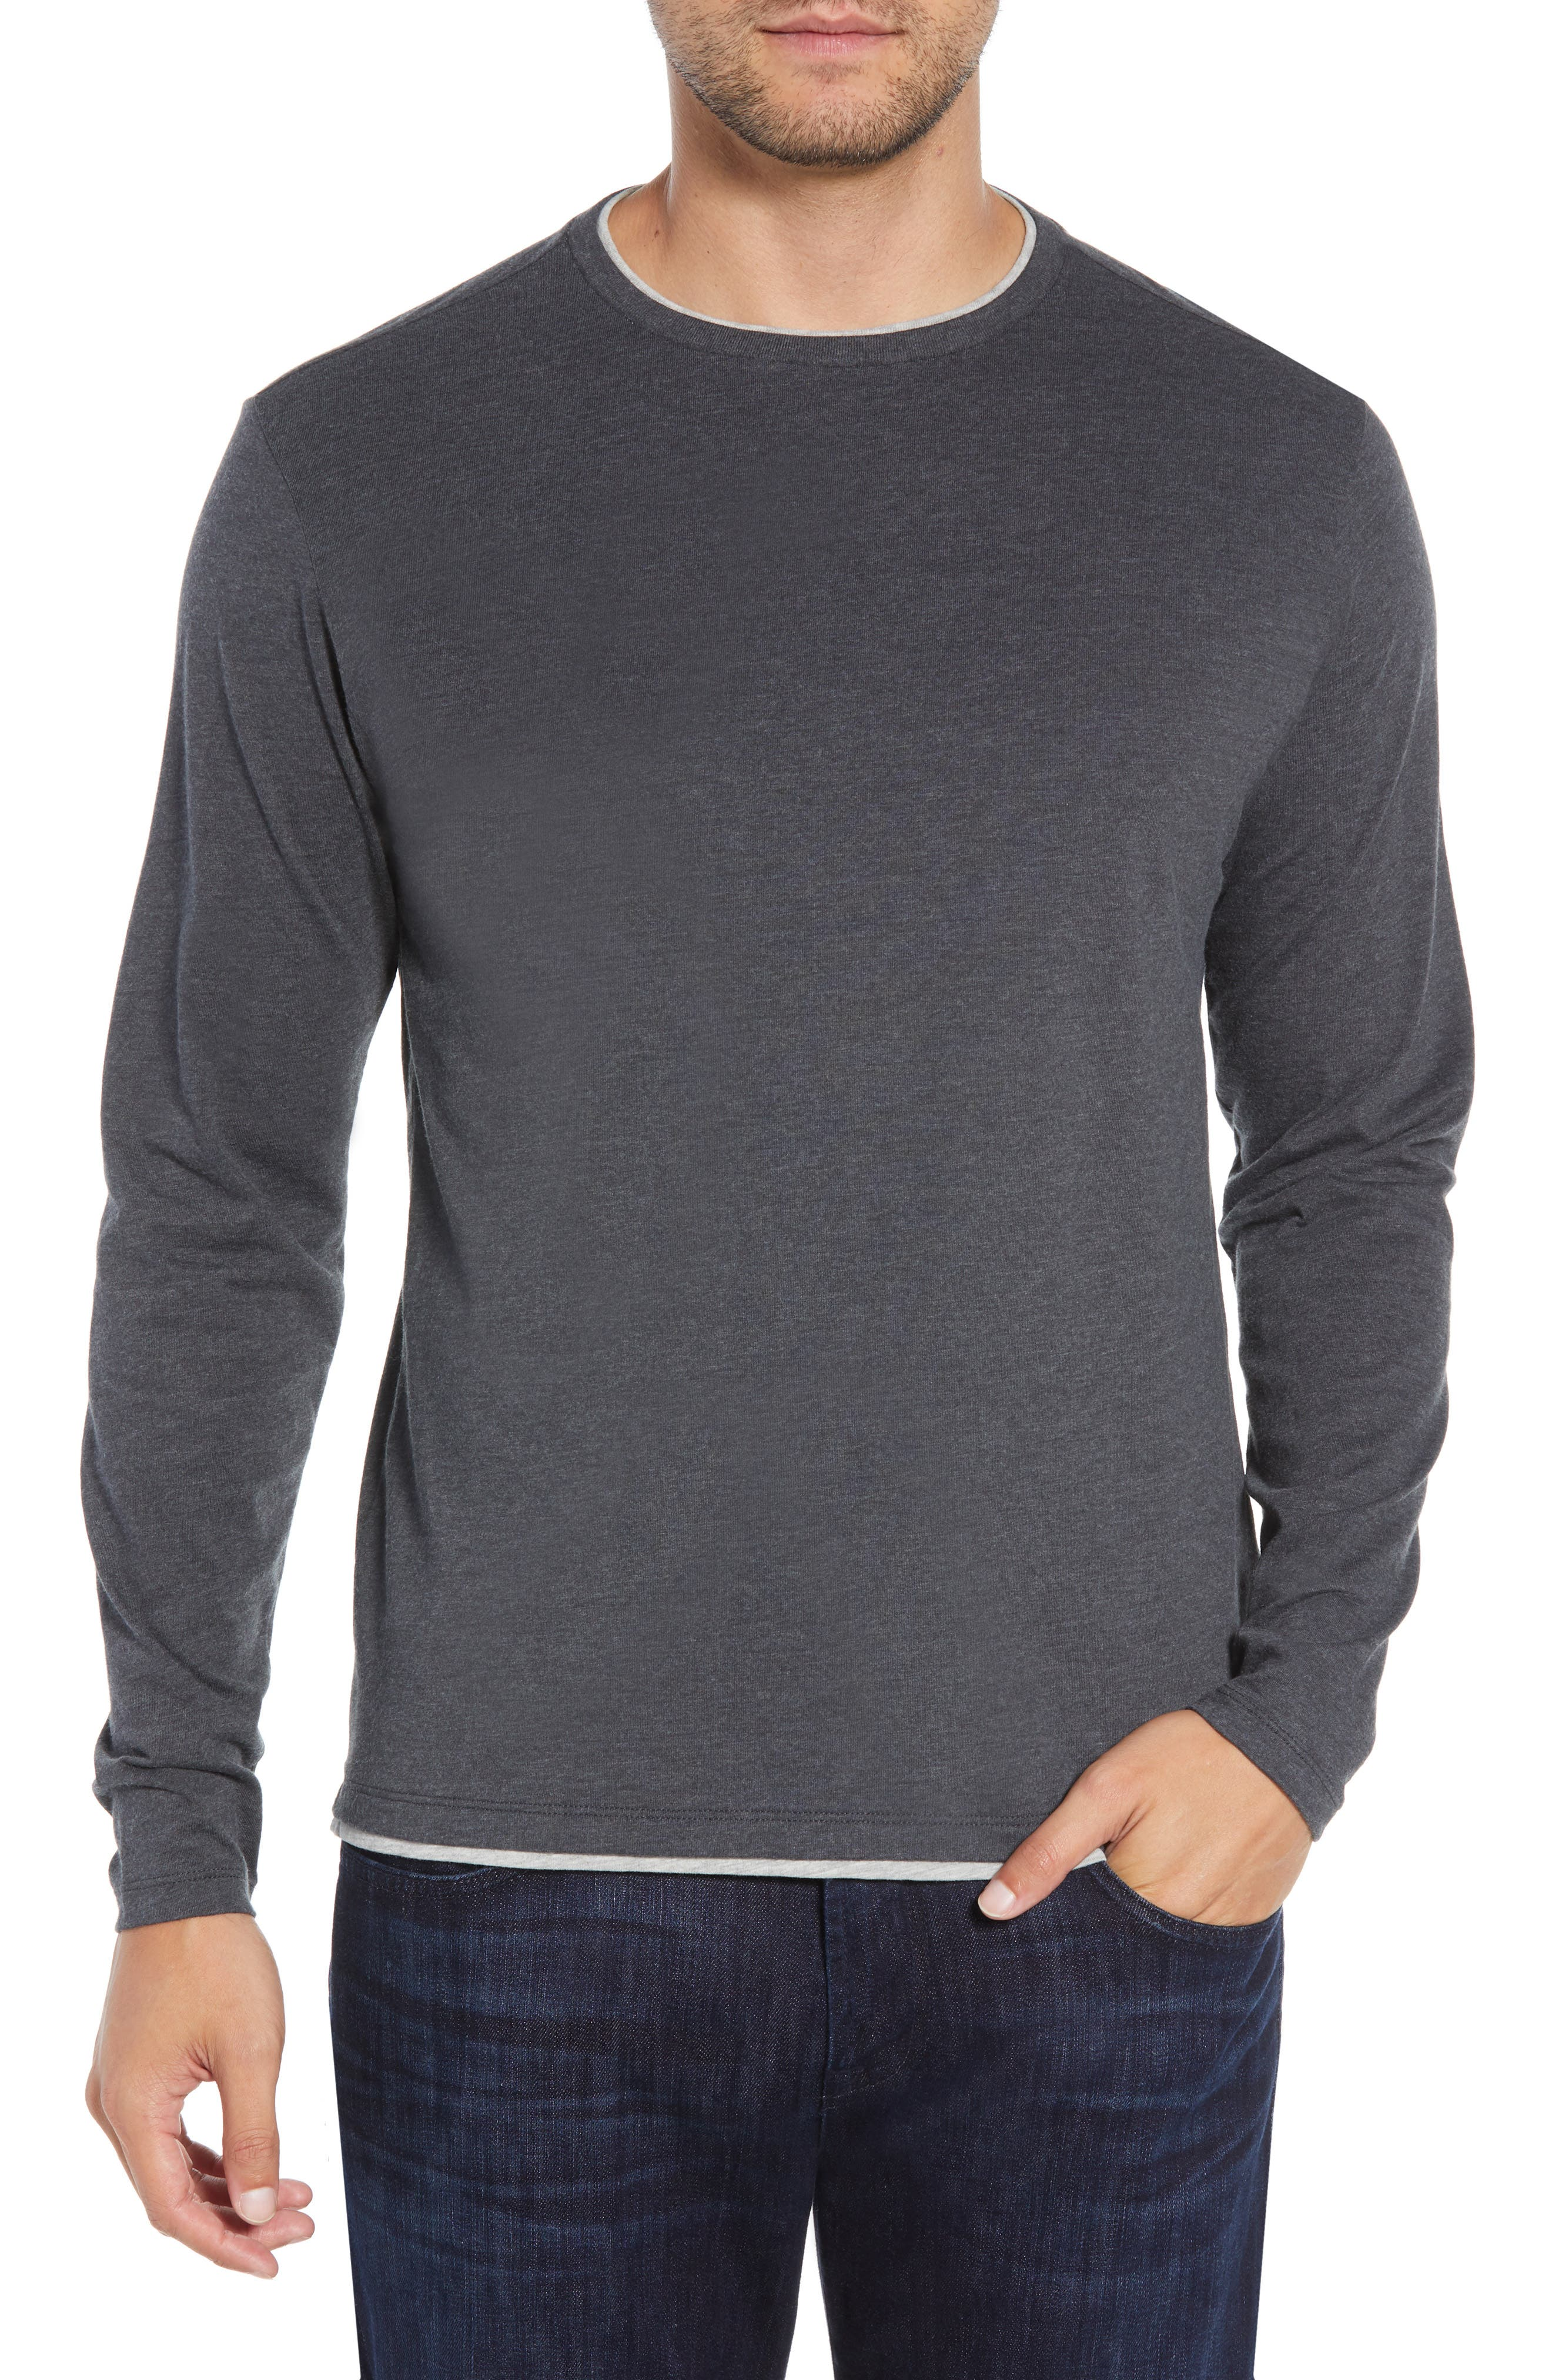 Halifax Long Sleeve Crewneck T-Shirt,                         Main,                         color, TITANIUM